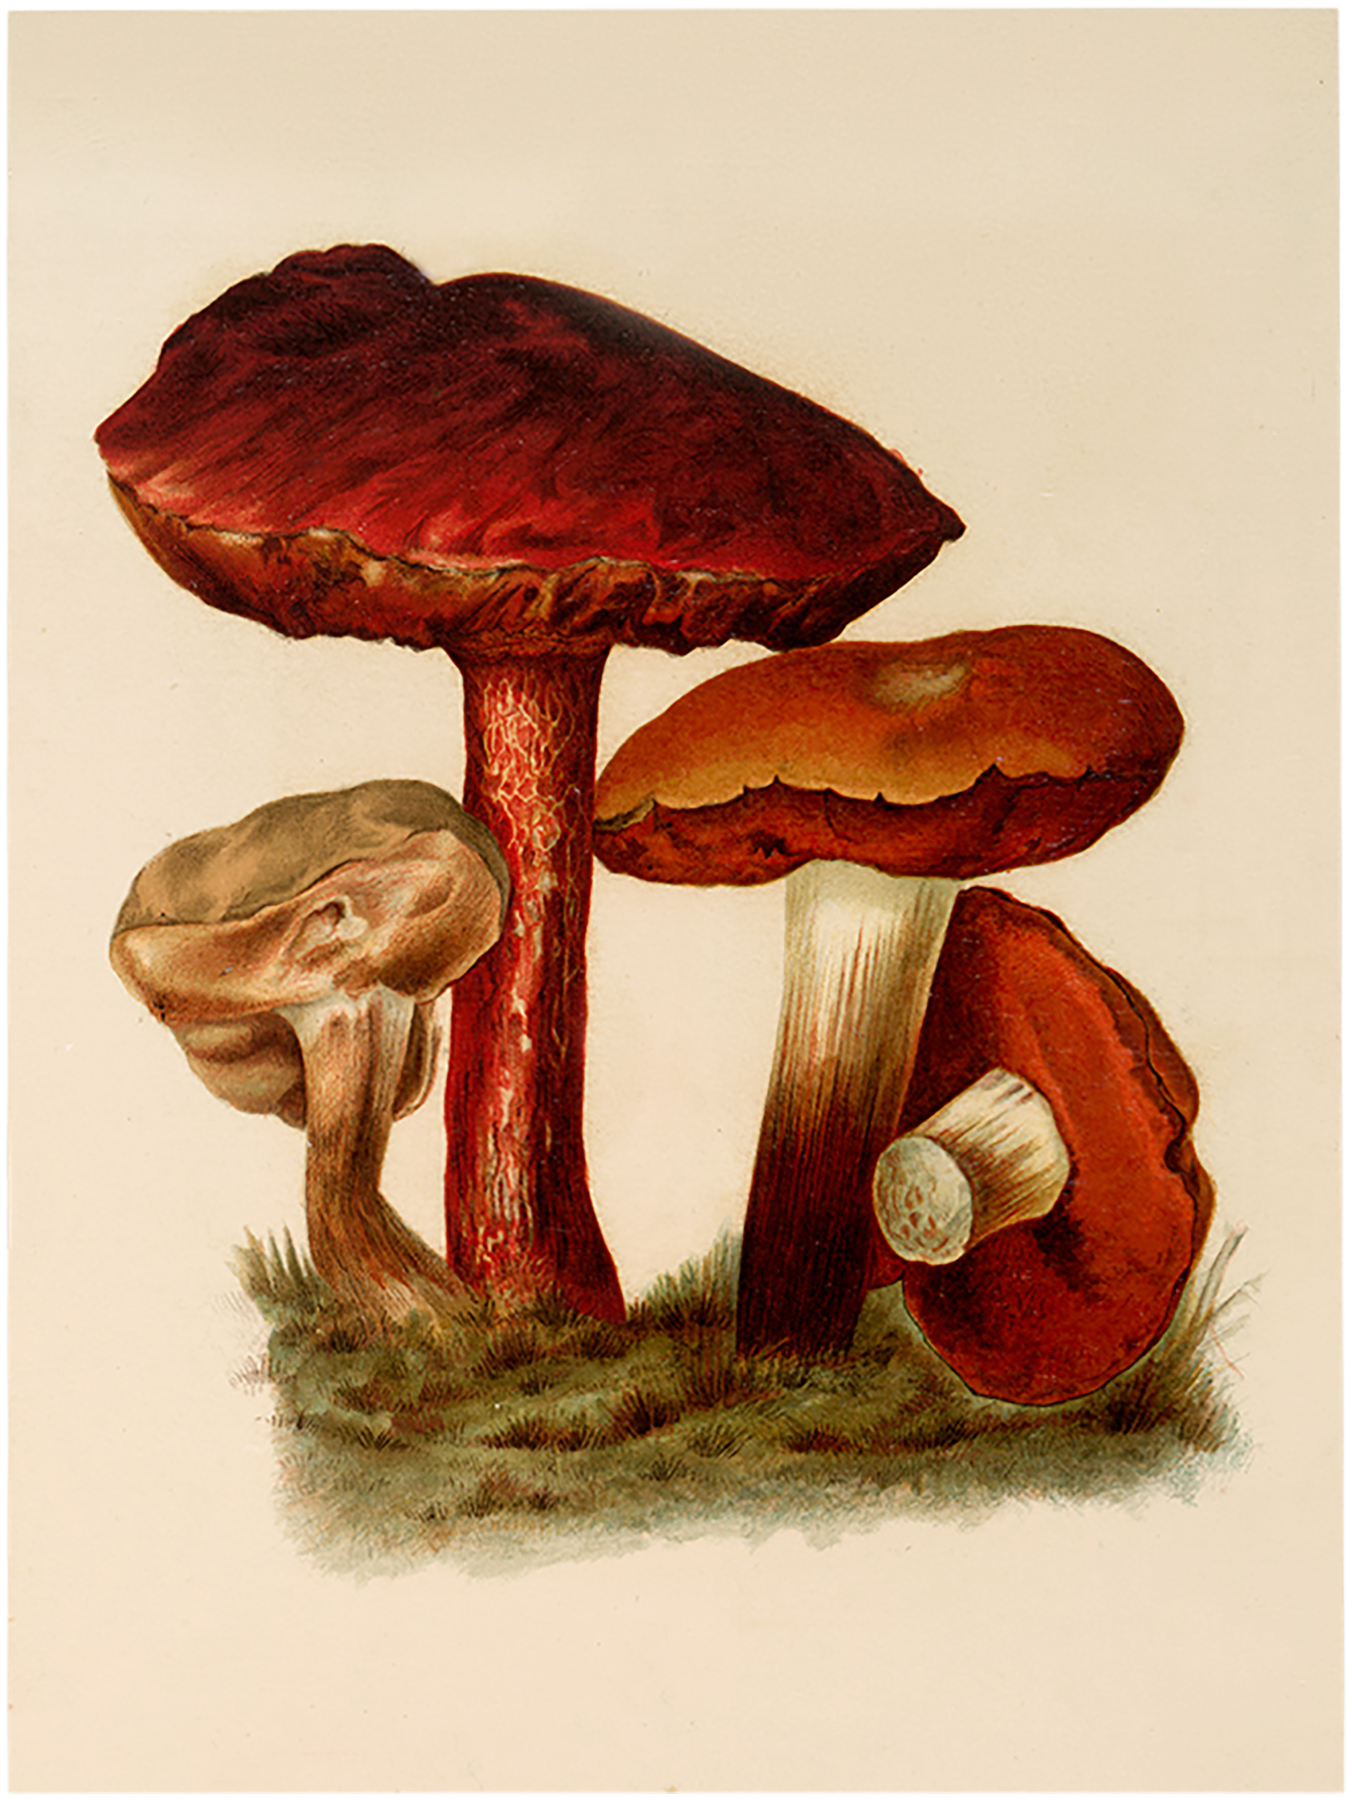 mushroom images the. Mushrooms clipart vintage